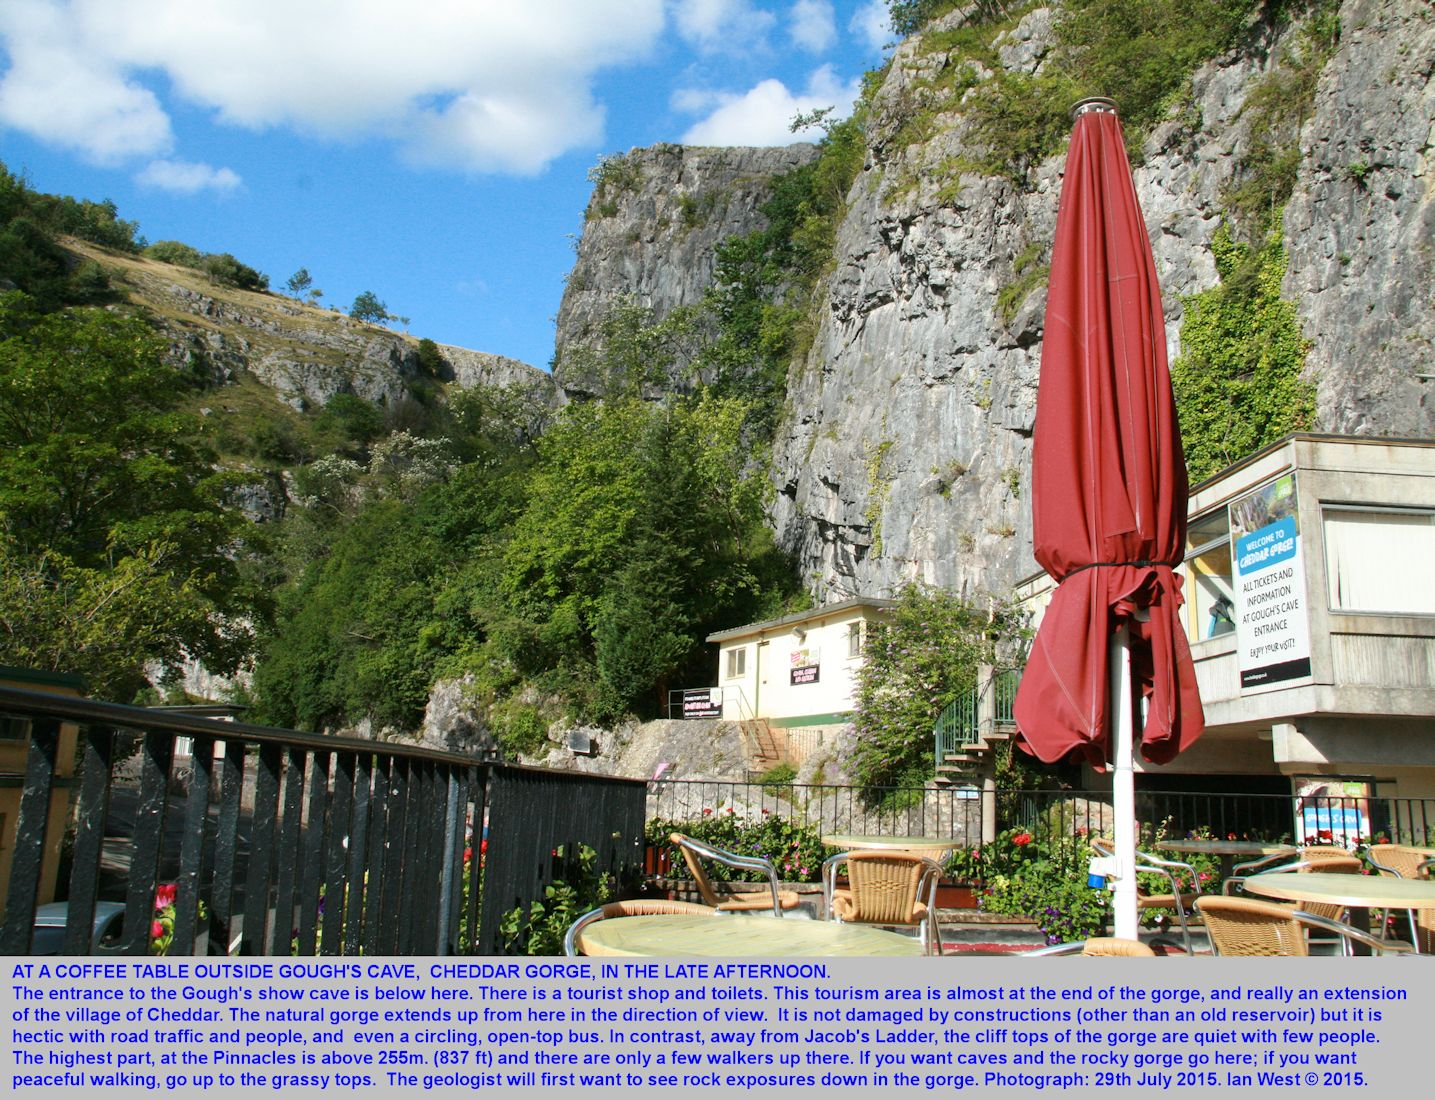 At the coffee cafe above the entrance to Gough's Cave, Cheddar Gorge, Mendip Hills, Somerset, 29th July 2015, Ian West